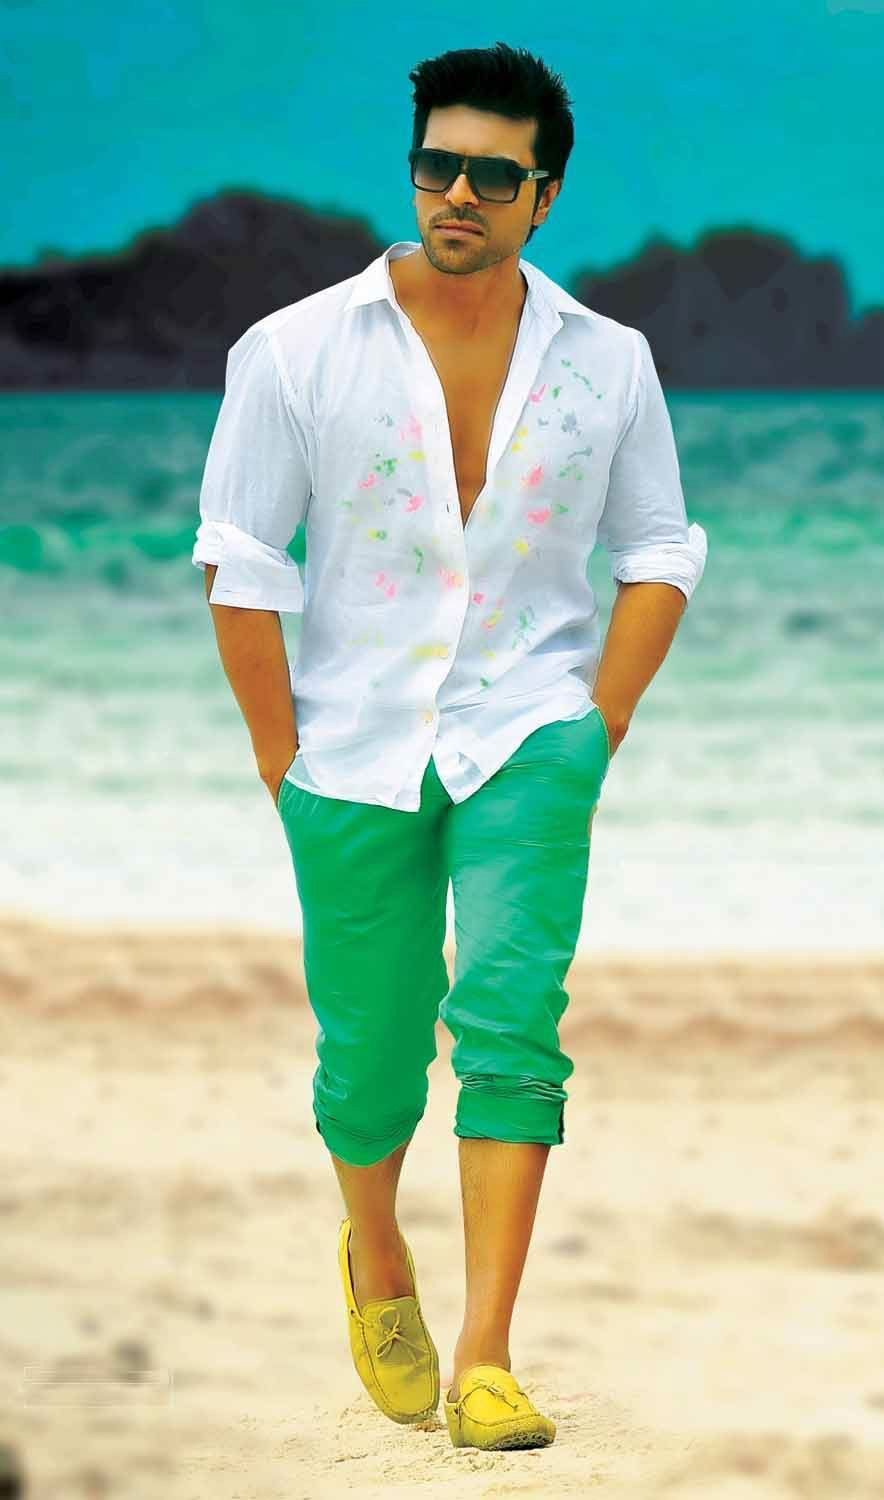 Ram charan Images Wallpaper Download